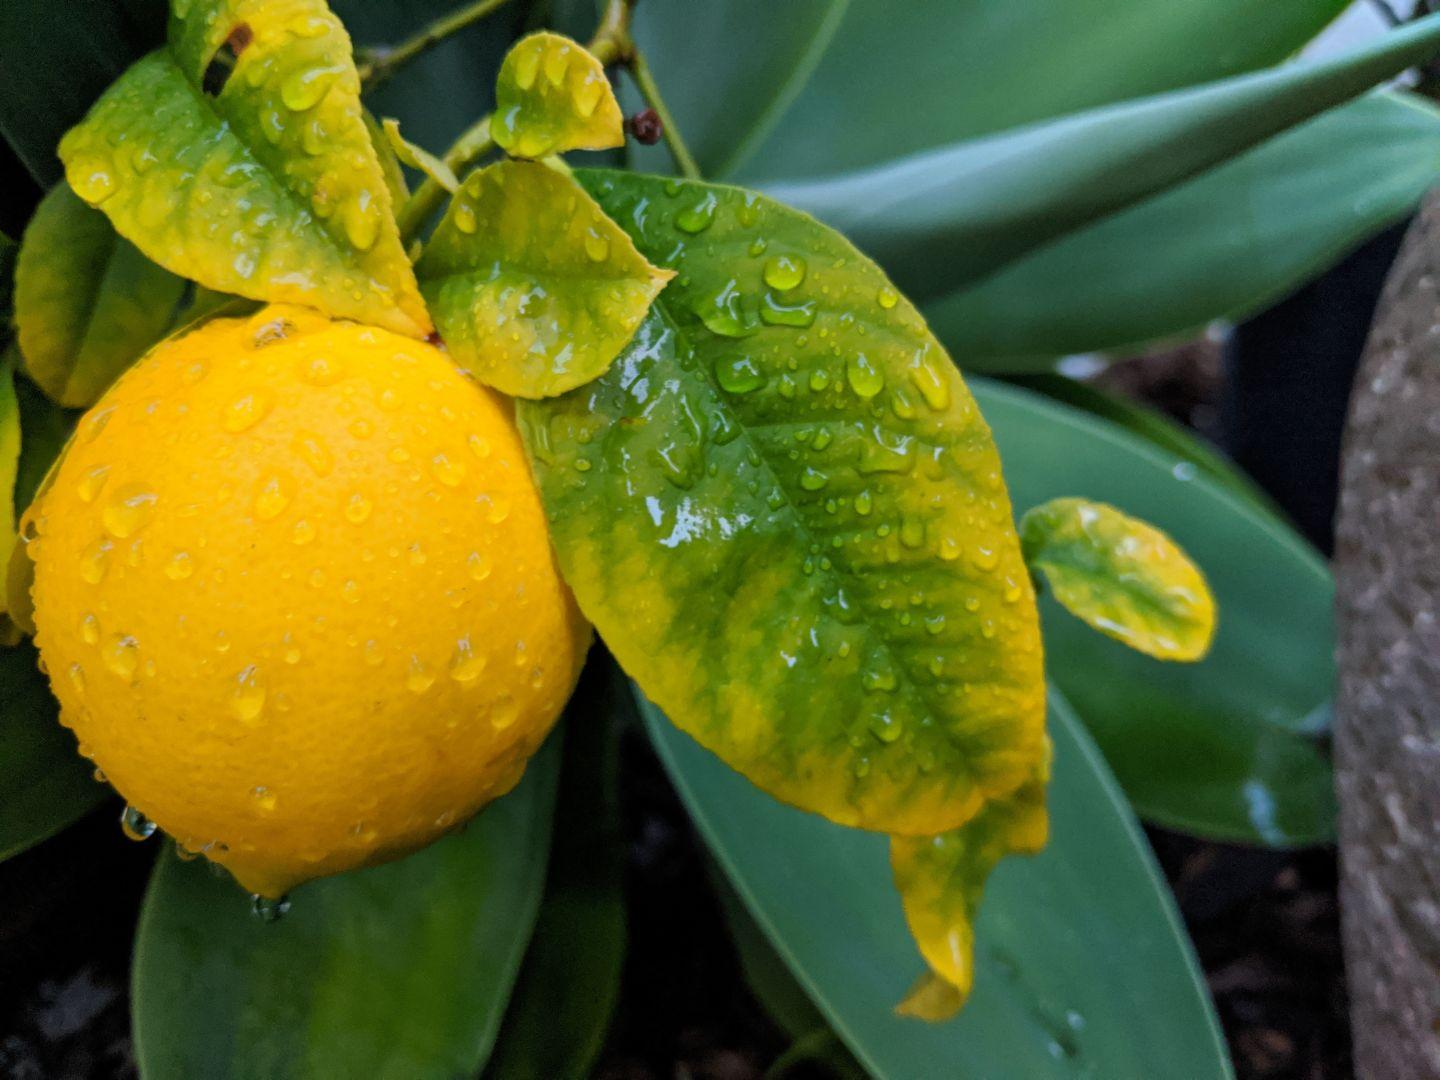 Lemon after the rain.